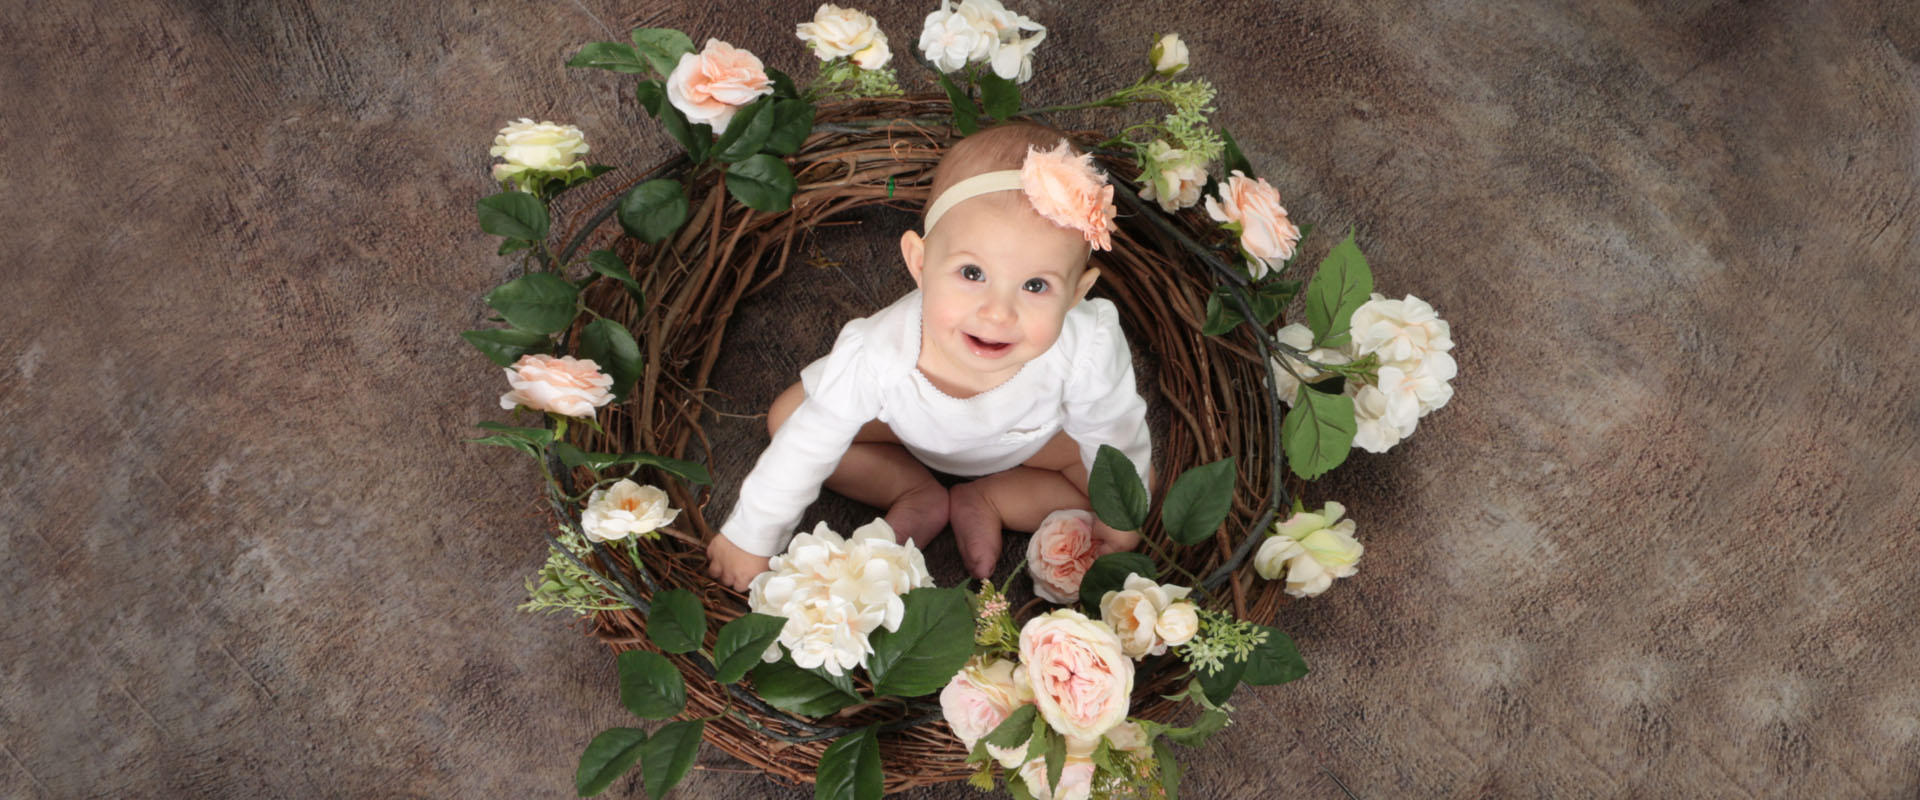 Baby girl Spring portrait with flower garland